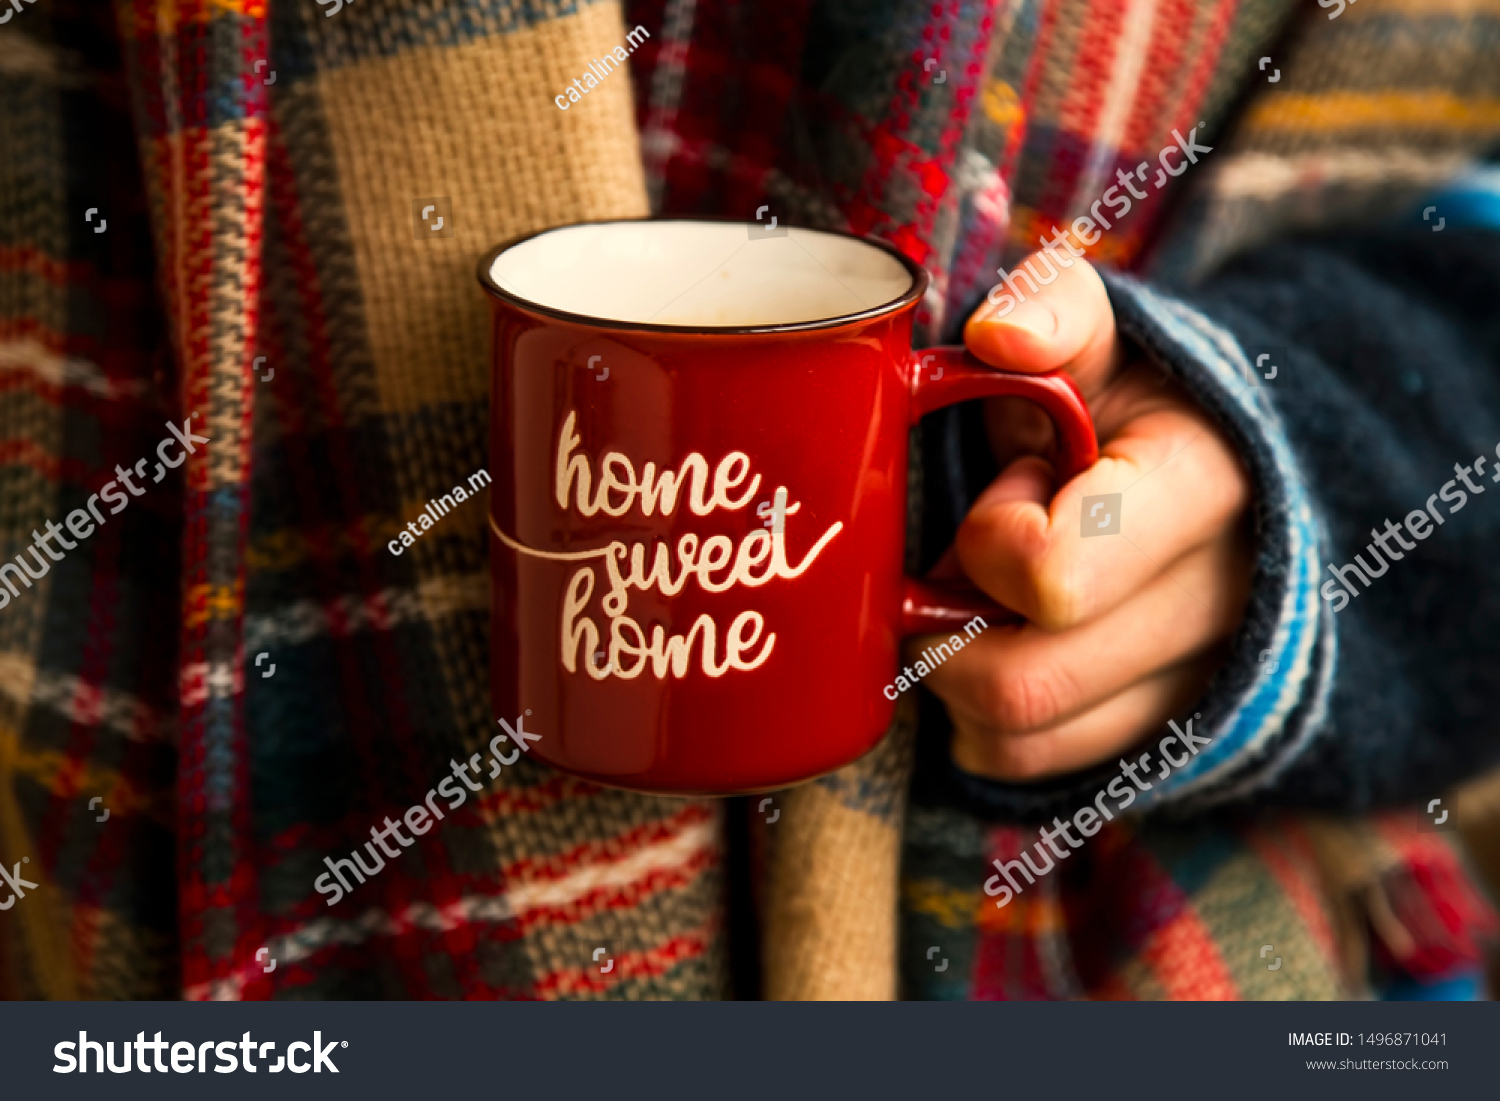 Cozy fall coffee cup, woman hands holding warm rustic autumn coffee cup with cozy scarf, cozy fall still life #1496871041